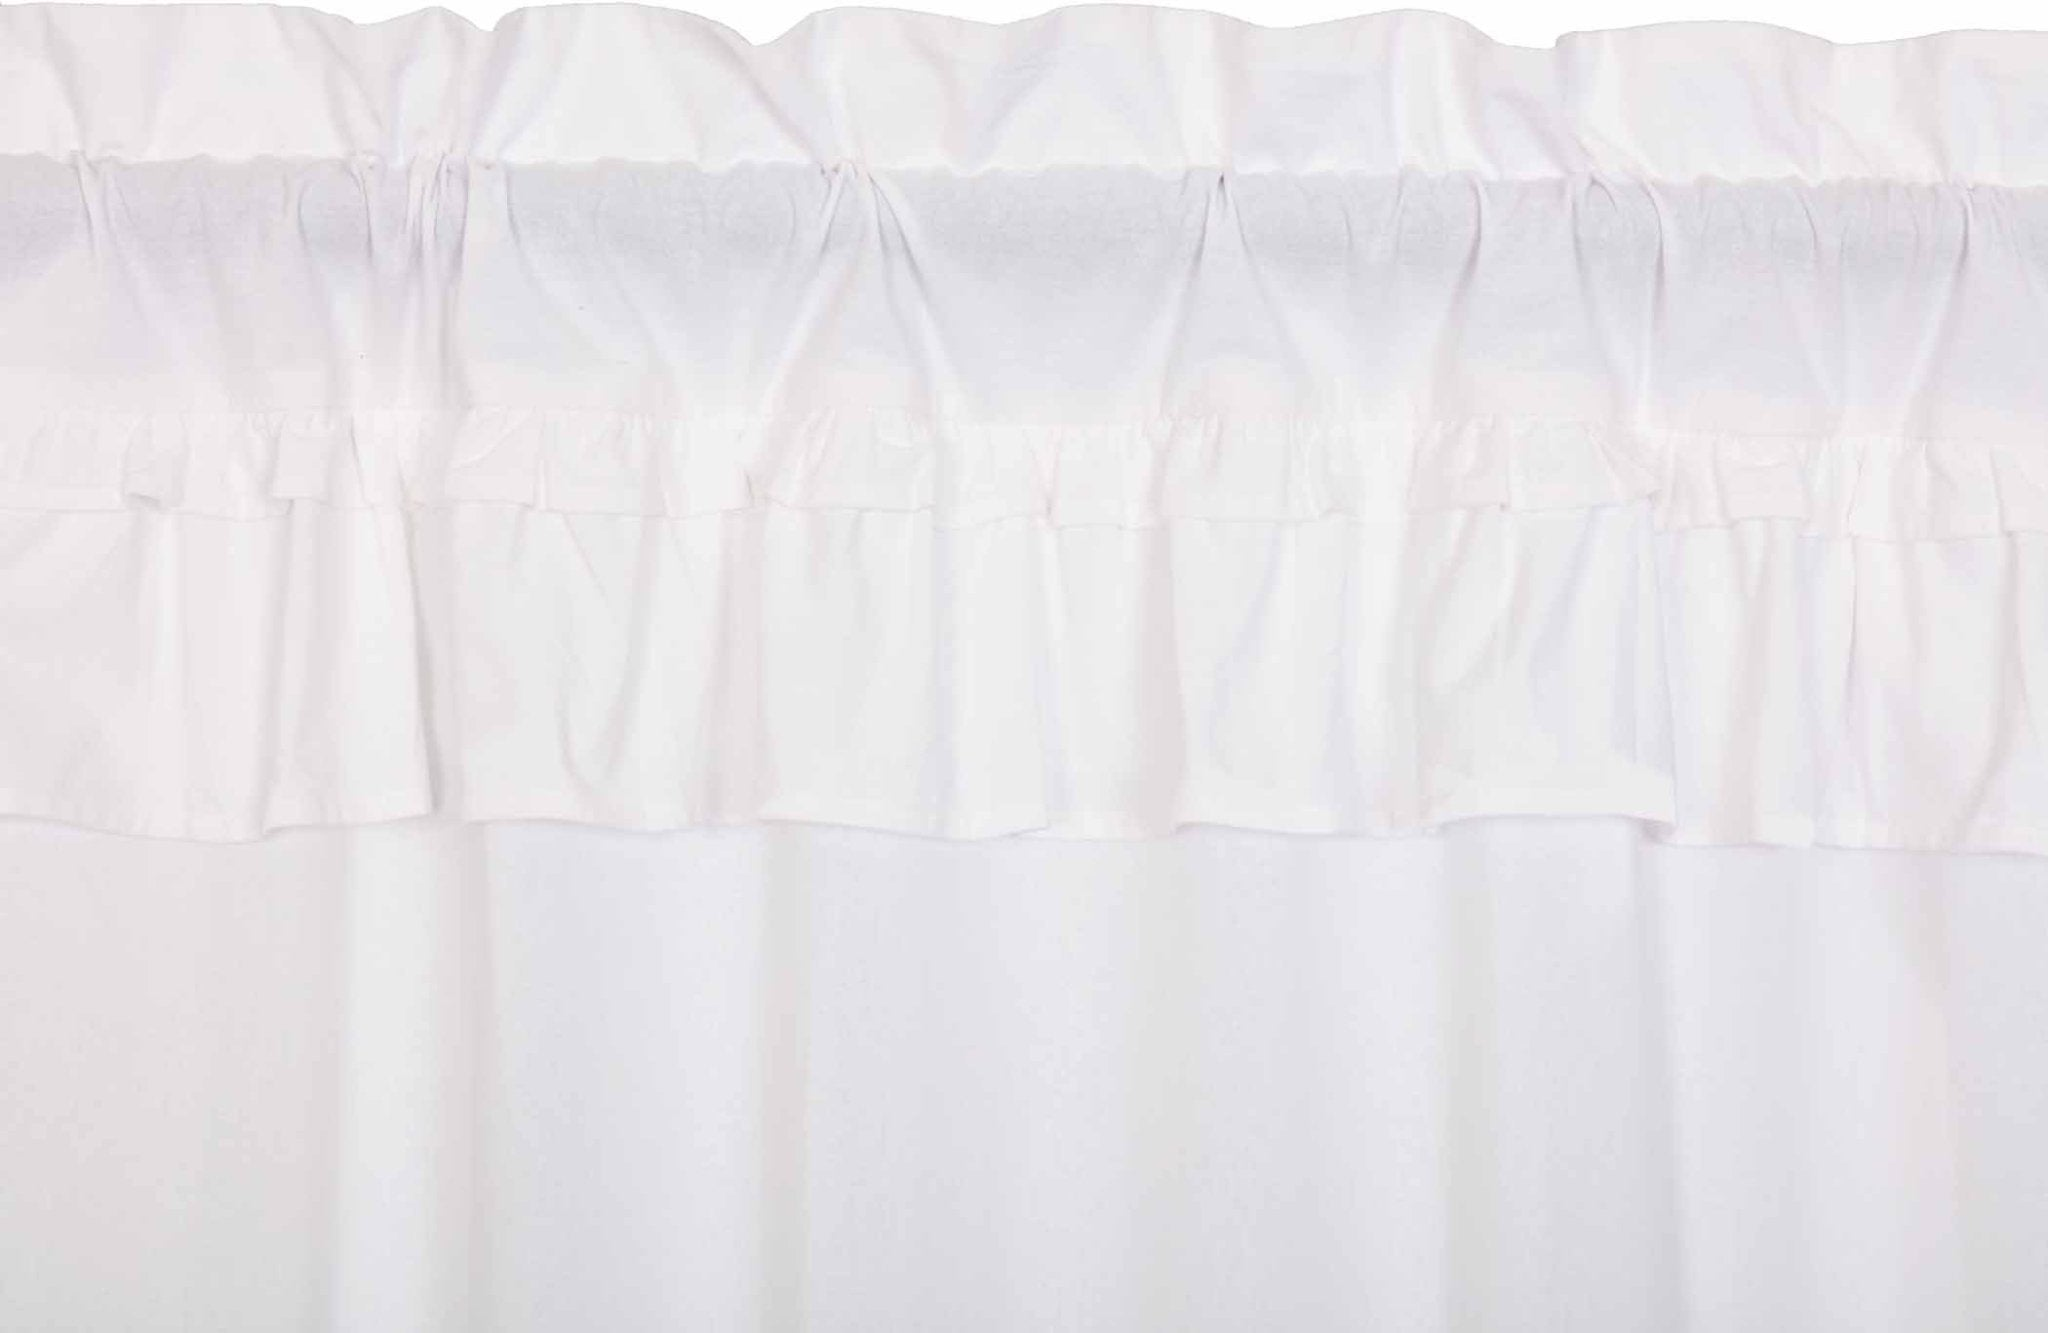 Muslin Ruffled Bleached White Panel.